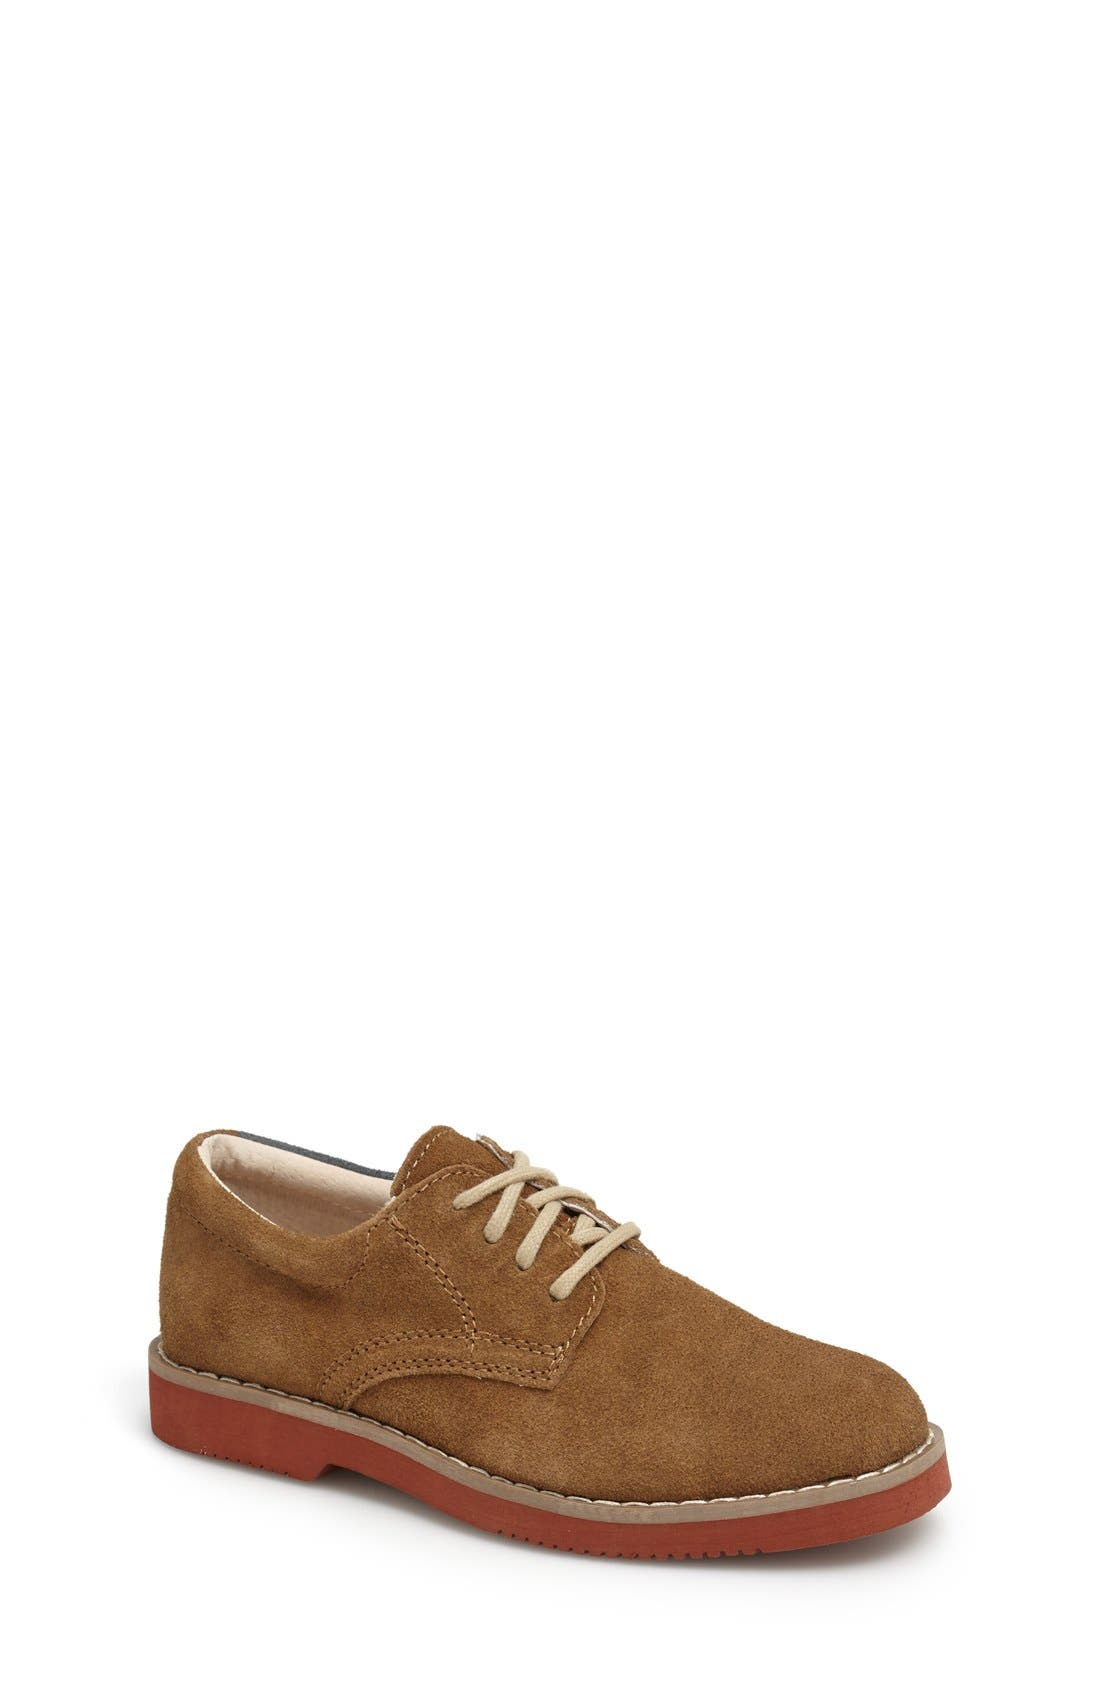 Alternate Image 1 Selected - Tucker + Tate by Nordstrom 'Cameron' Oxford (Walker, Toddler, Little Kid & Big Kid)